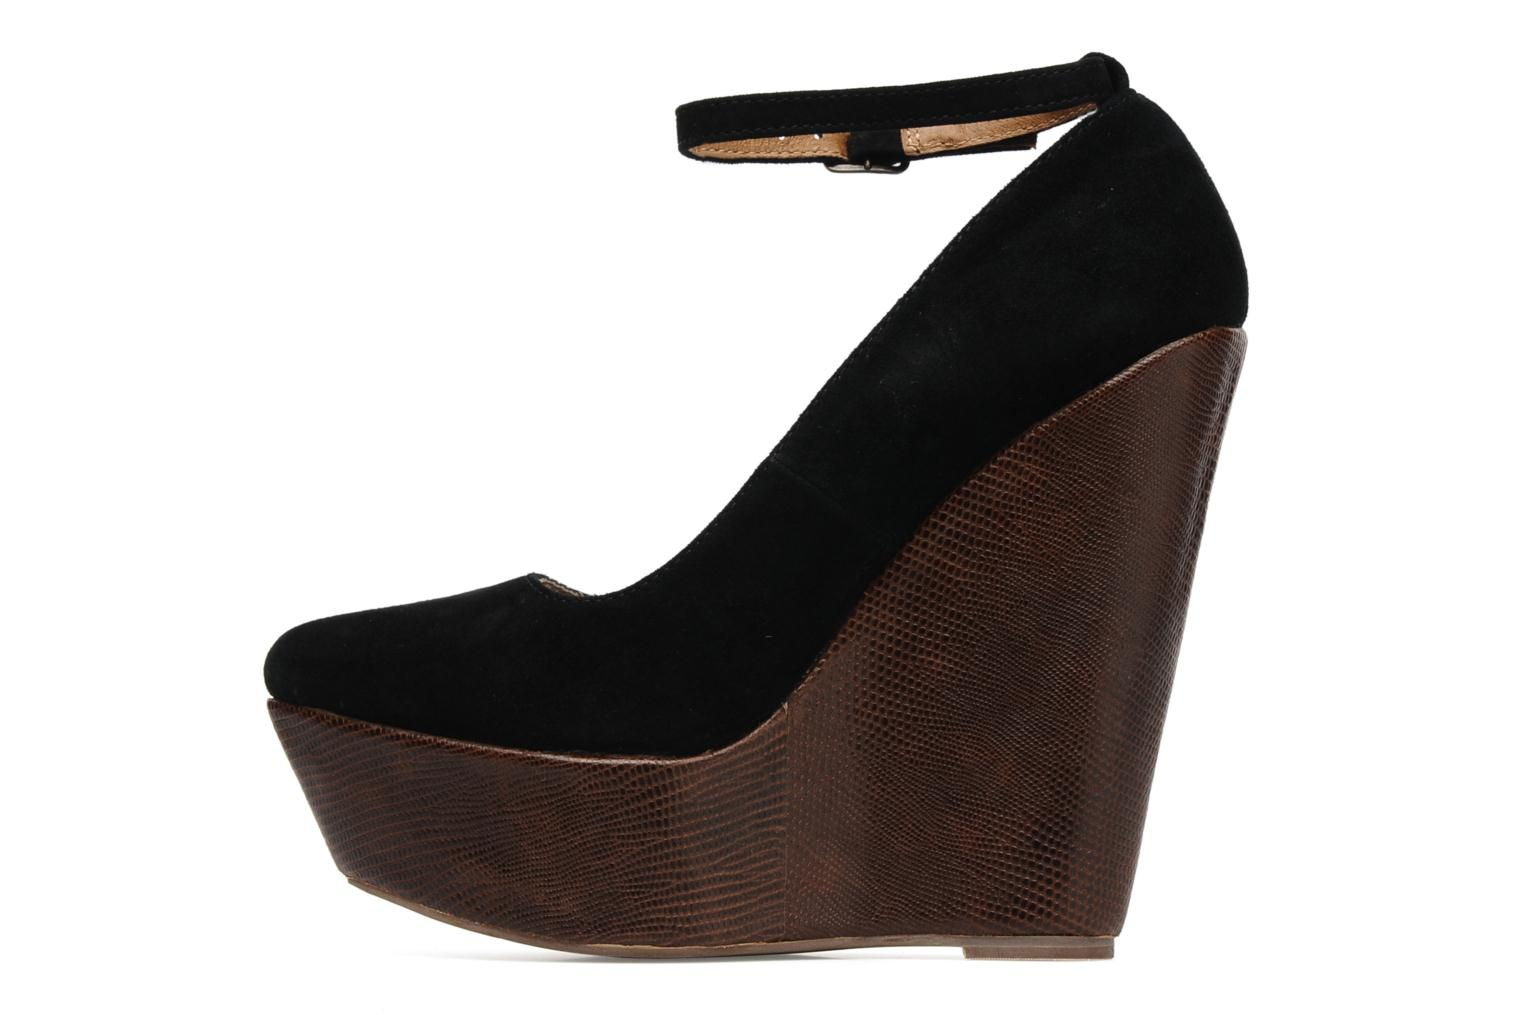 PIZAN BLACK SUEDE/TAN LIZZARDWEDGE